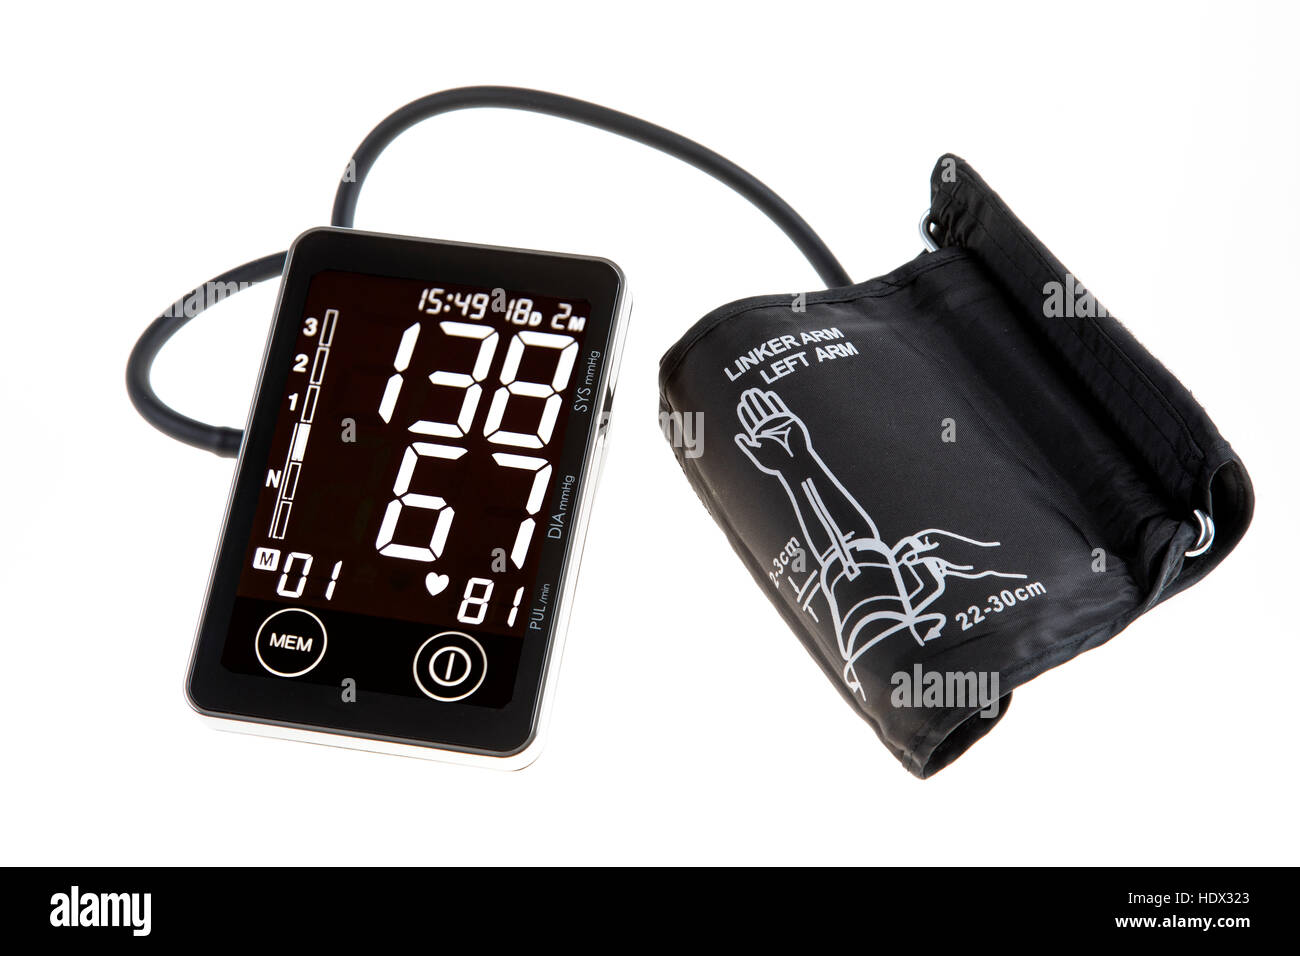 Blood pressure monitor, digital display, upper arm cuff, for self-measurement, - Stock Image